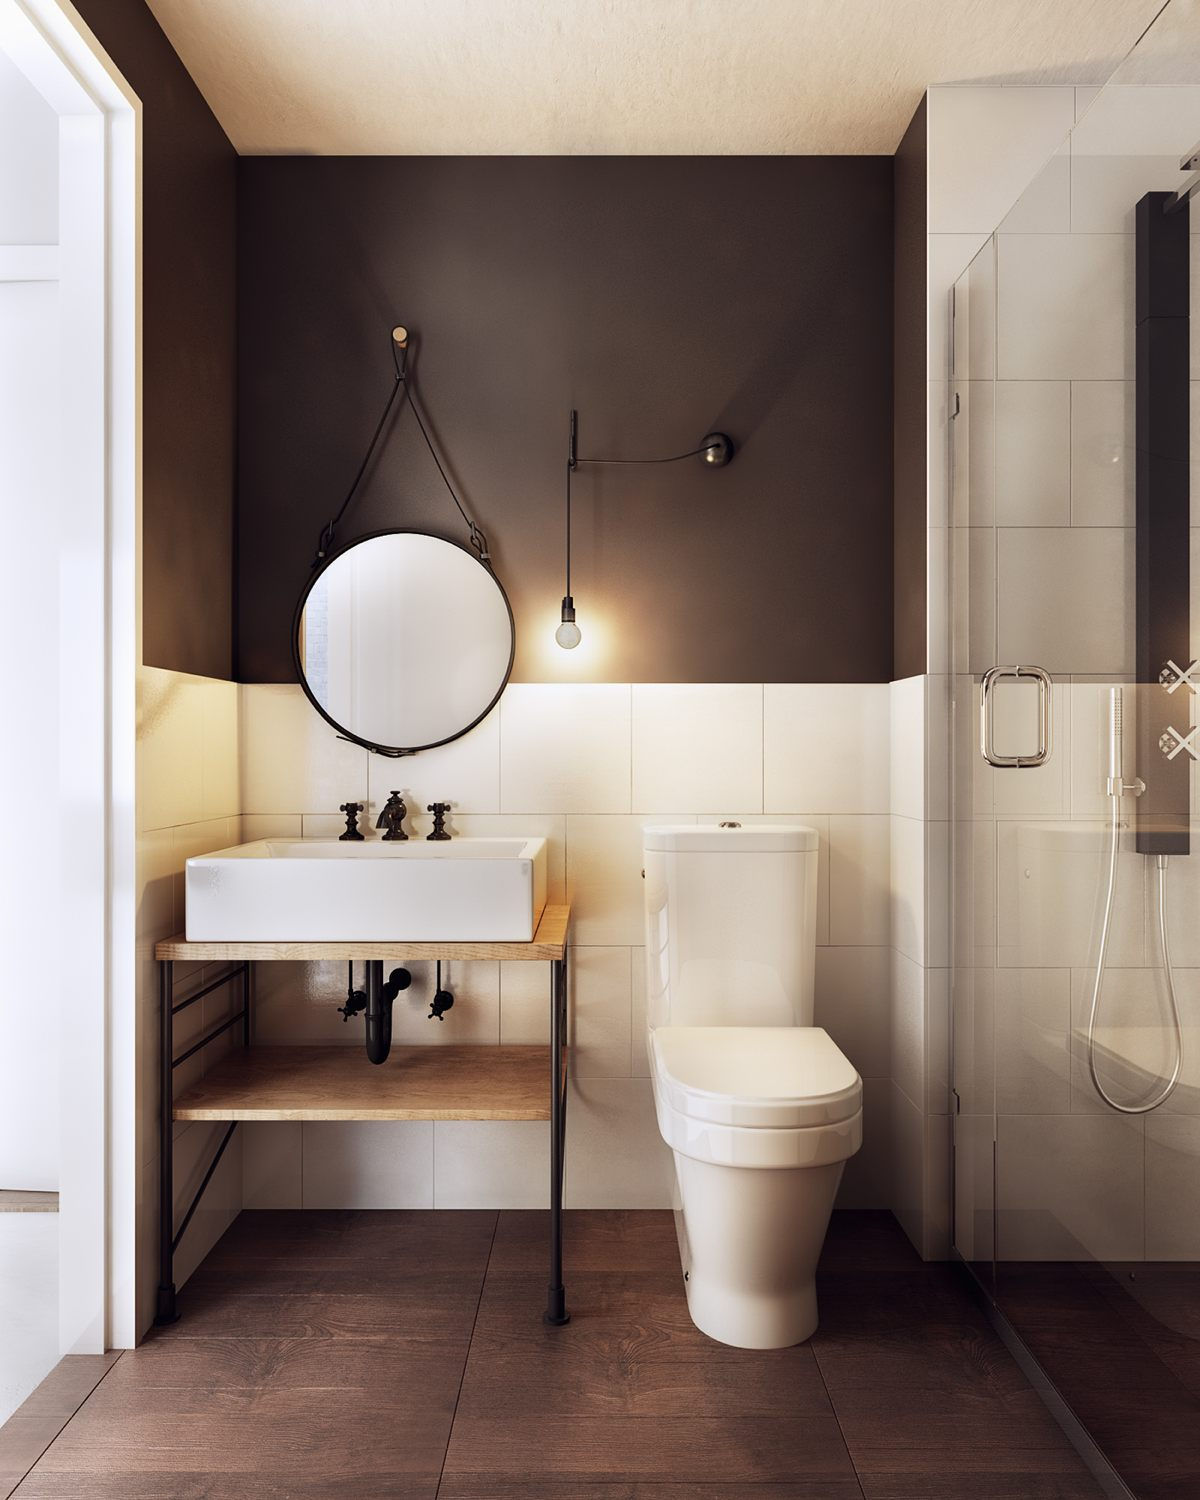 A charming nordic apartment interior design by koj design roohome designs plans Interior design for apartment bathroom